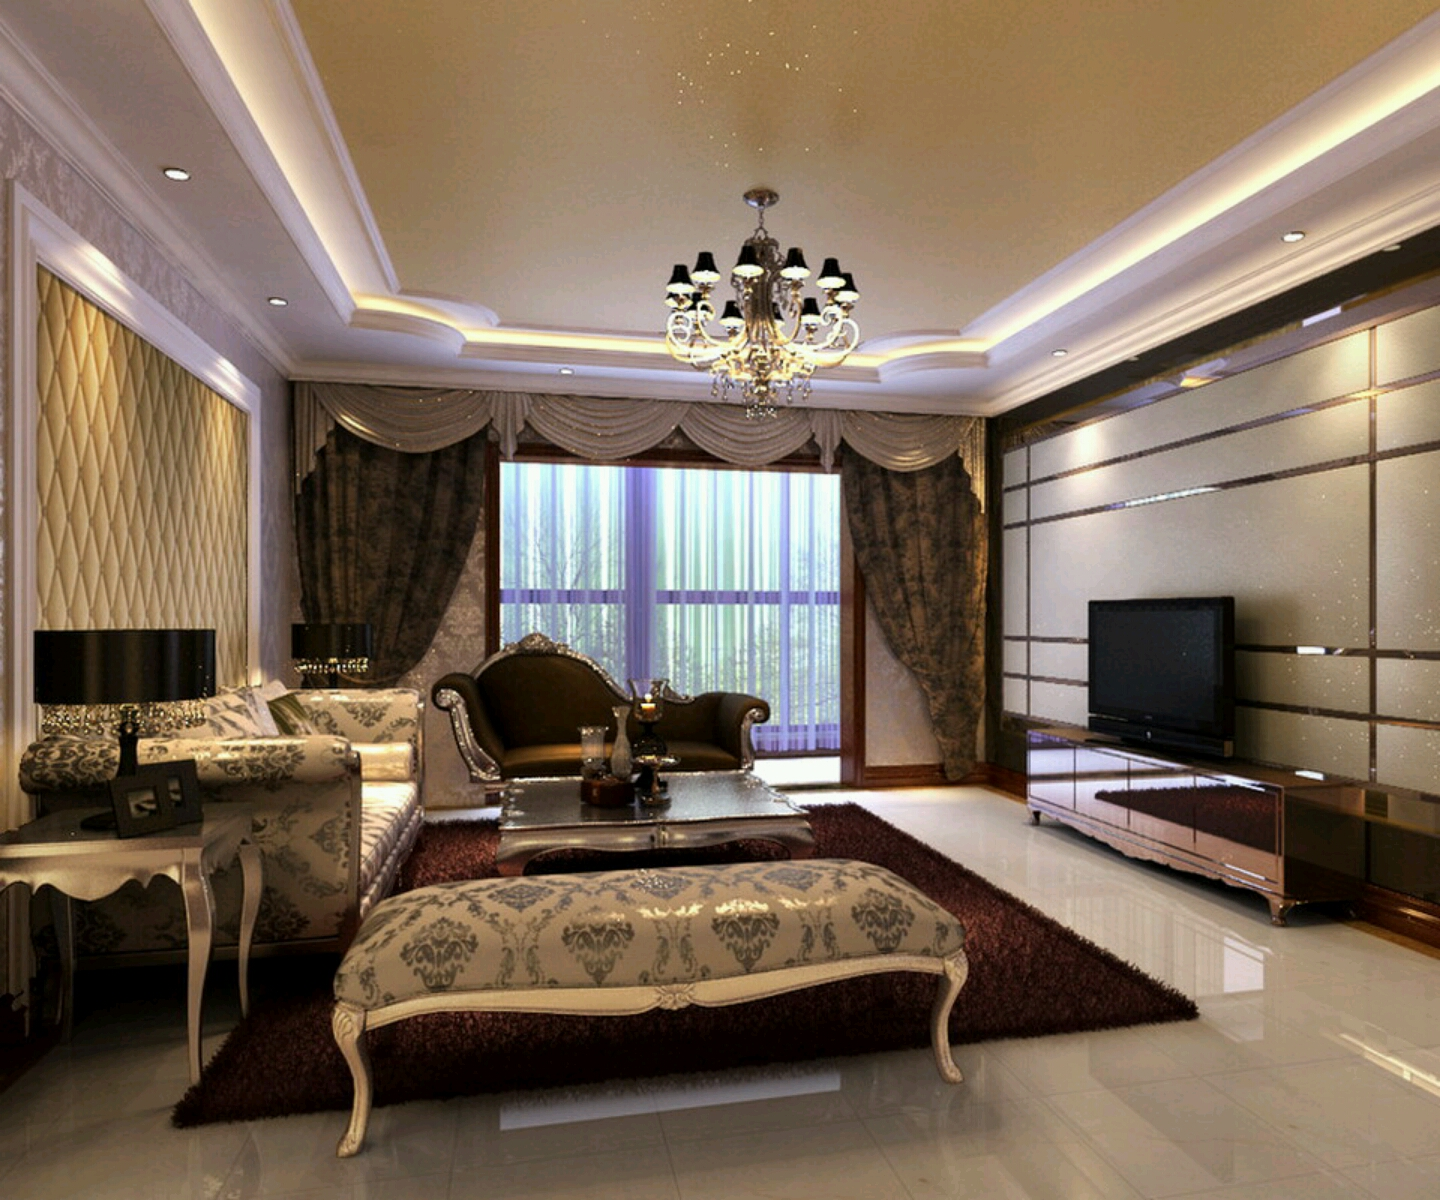 new home designs latest luxury homes interior decoration interior design living room designs 88designbox